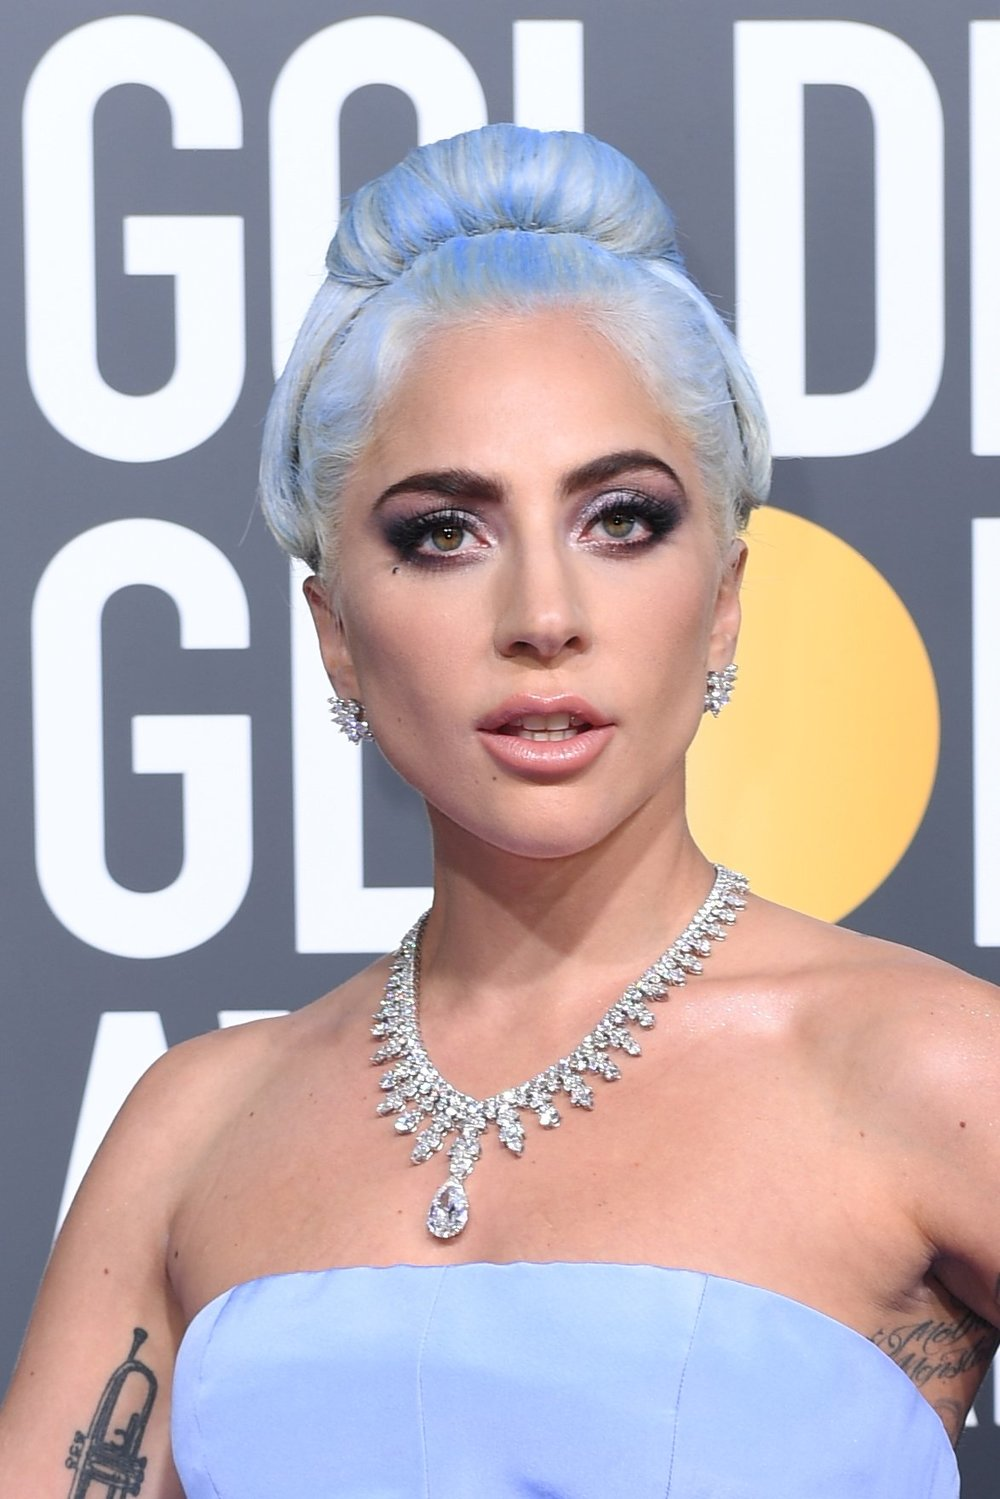 "Clad in voluminous Valentino, the style icon/superstar, Lady Gaga, made a statement in the Tiffany aurora necklace, a custom creation featuring 300 brilliant diamonds, including a 20-carat pear shaped diamond pendant as the centerpiece of the design. She complemented the piece with Tiffany & Co. diamond cluster earrings and three Tiffany diamond bracelets, altogether wearing more than 100 carats of diamonds. Chief artistic officer Reed Krakoff described Gaga as, ""a visionary artist who truly exemplifies creativity and iconic style,"" — and we couldn't agree more. -"